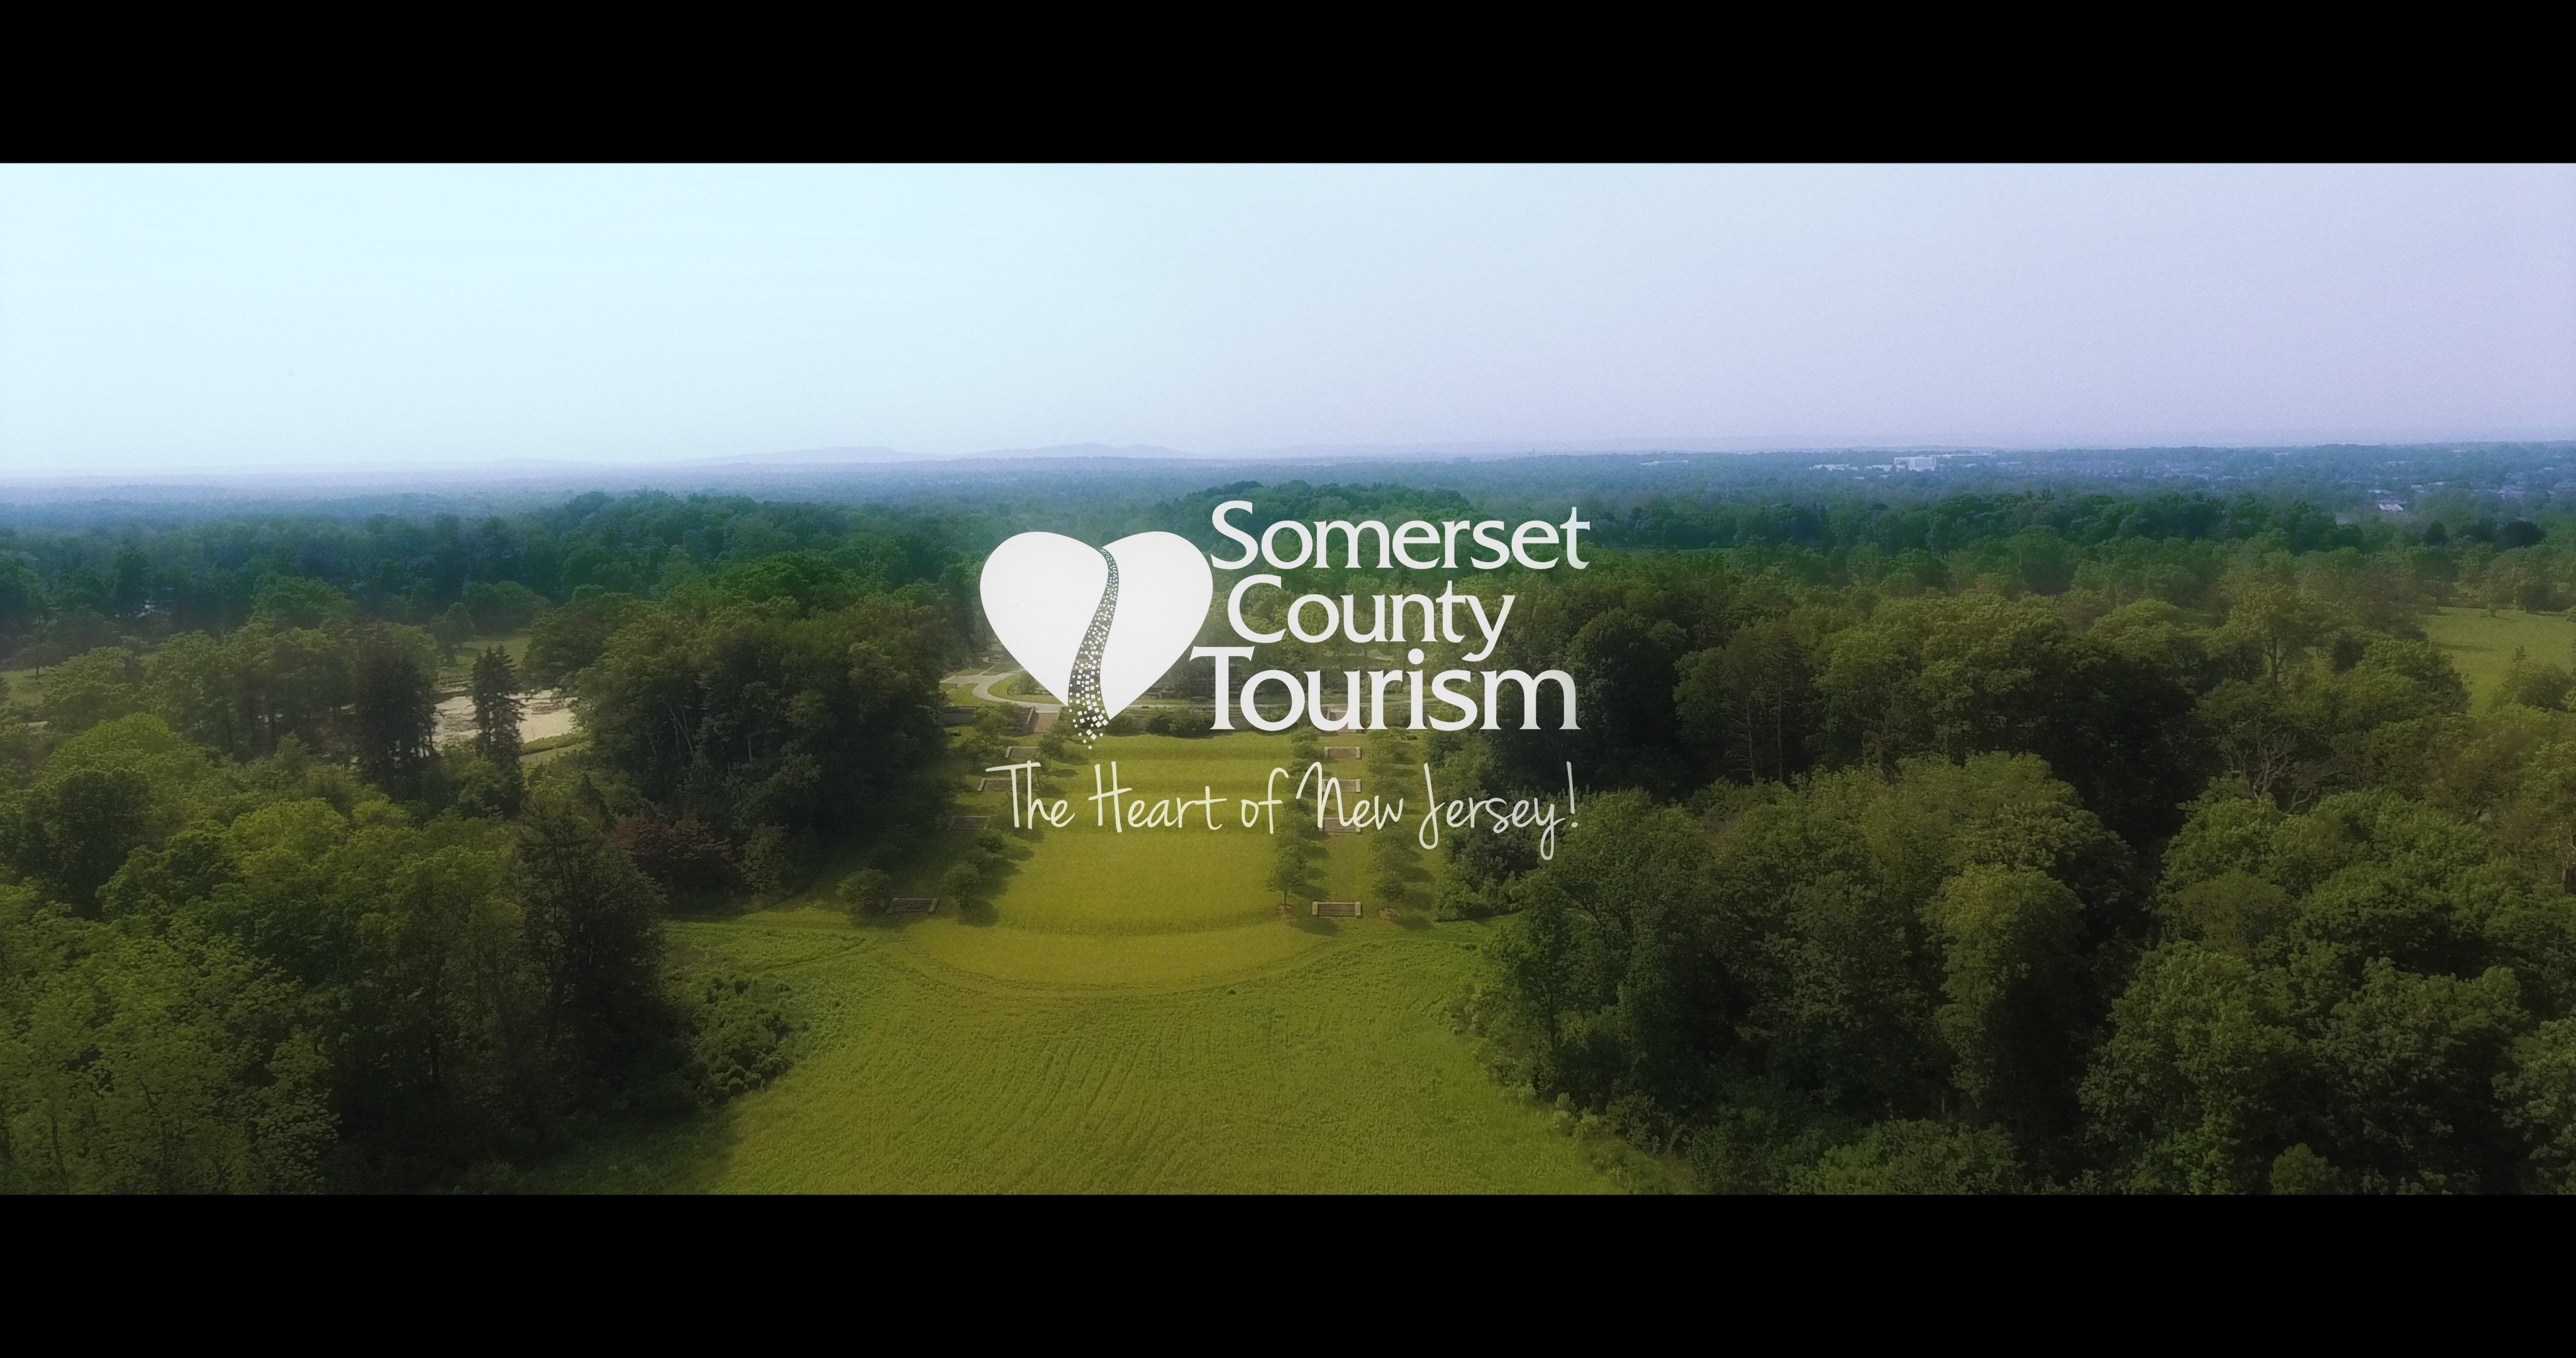 Video produced for Somerset County Tourism by That Werks